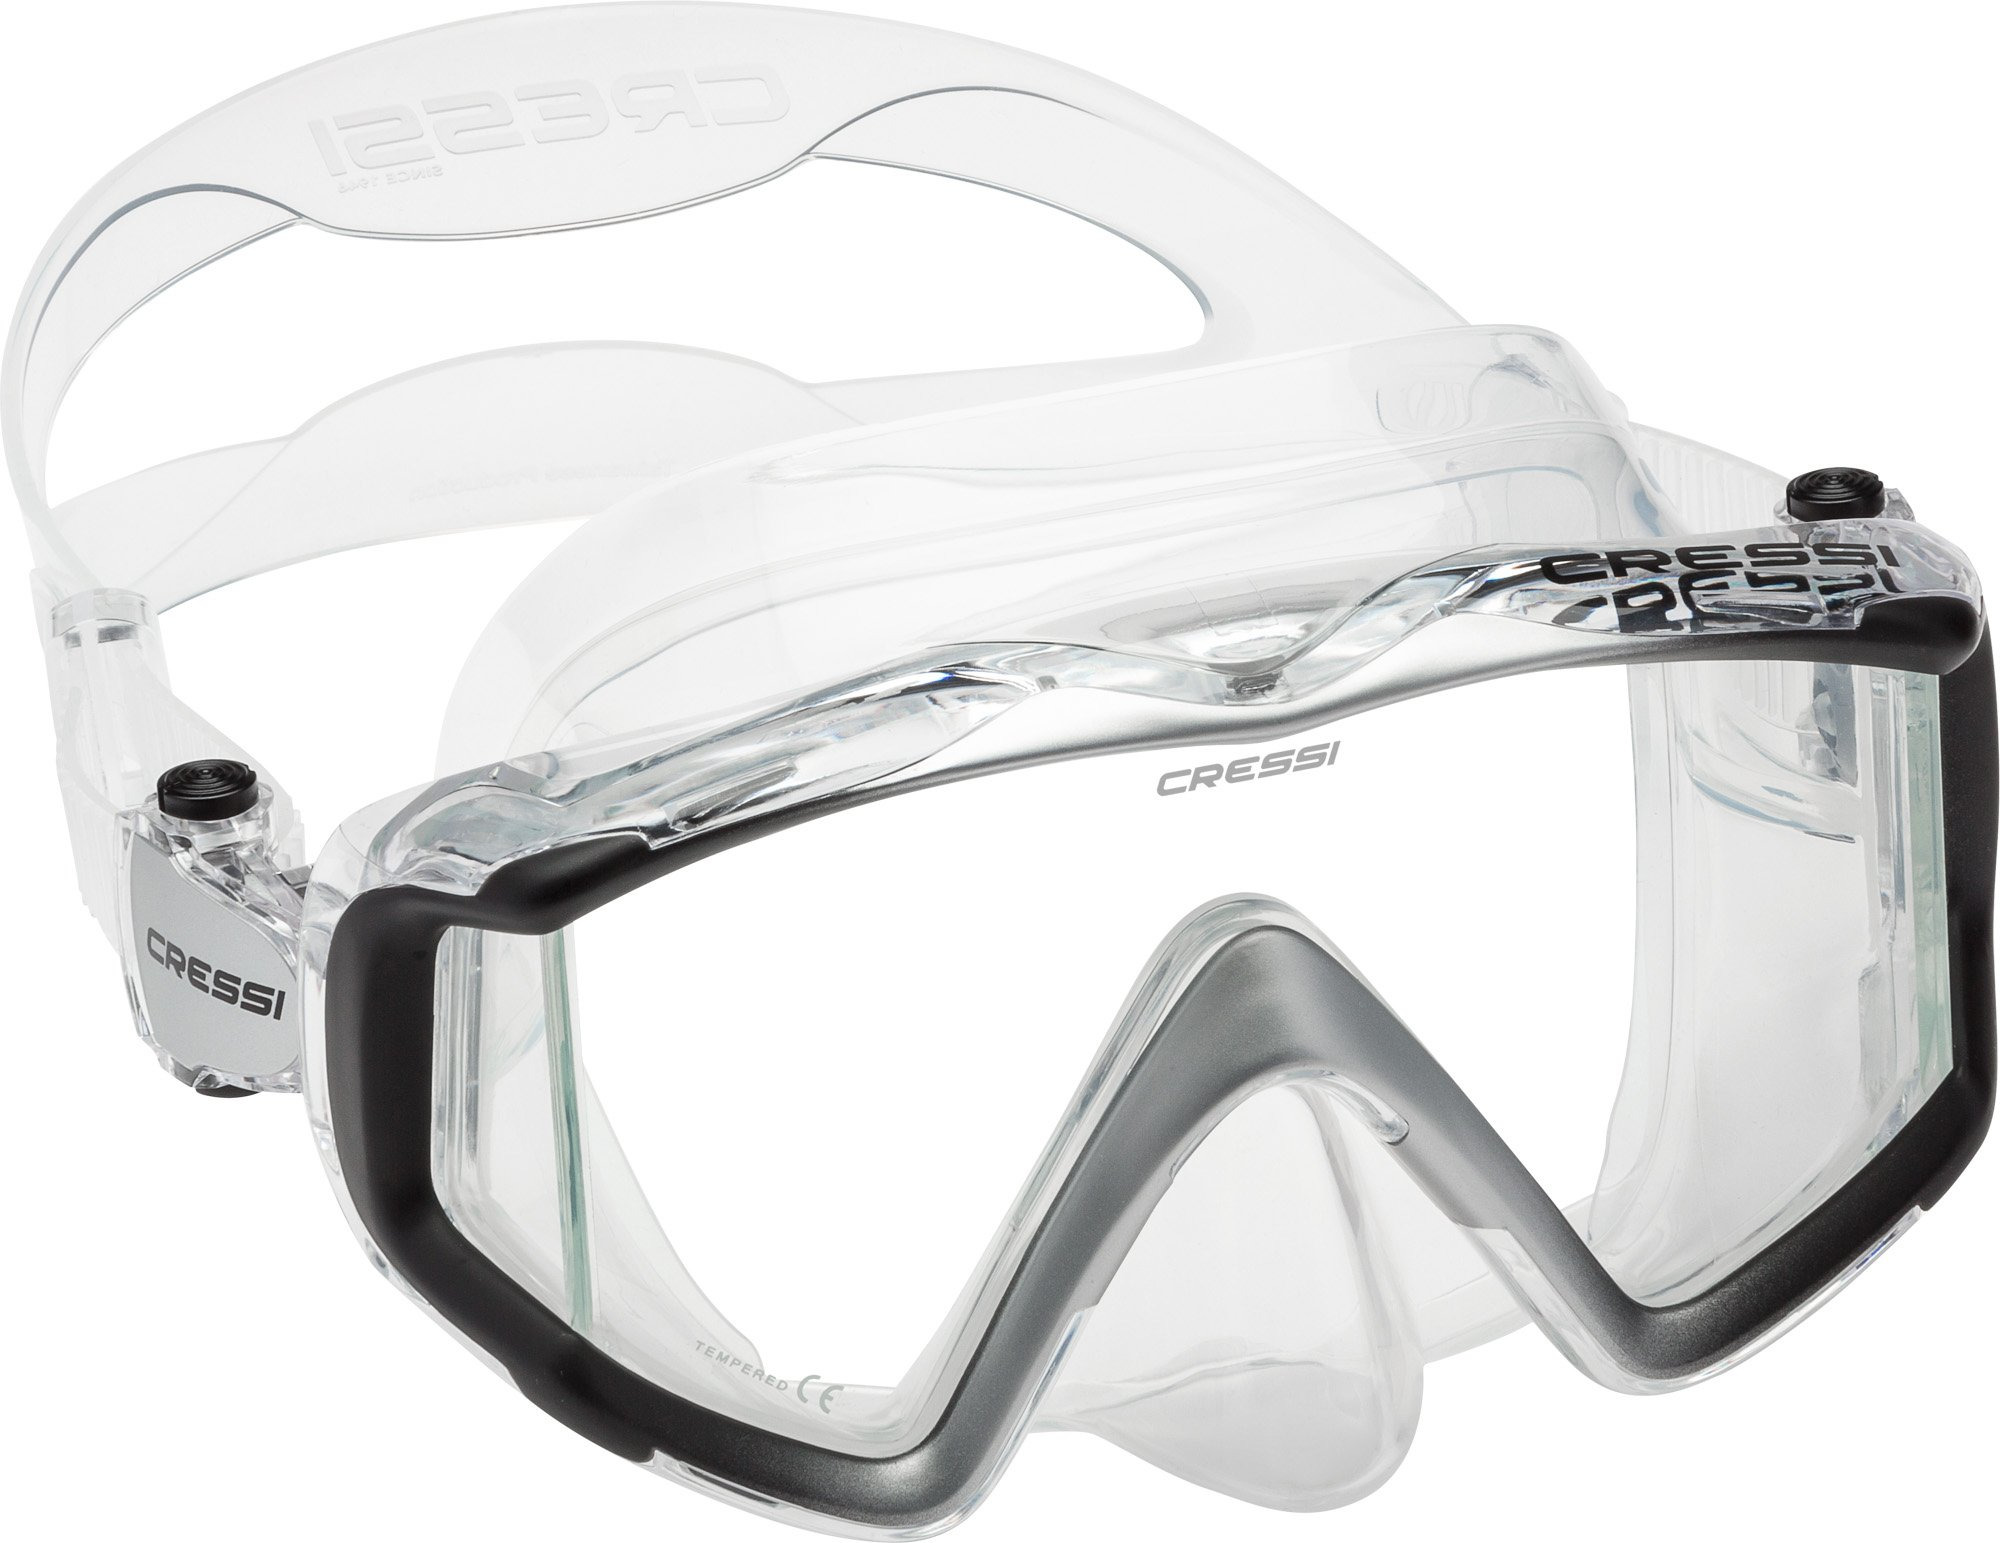 Cressi Liberty Triside Spe Diving Mask, Clear/Black/Silver